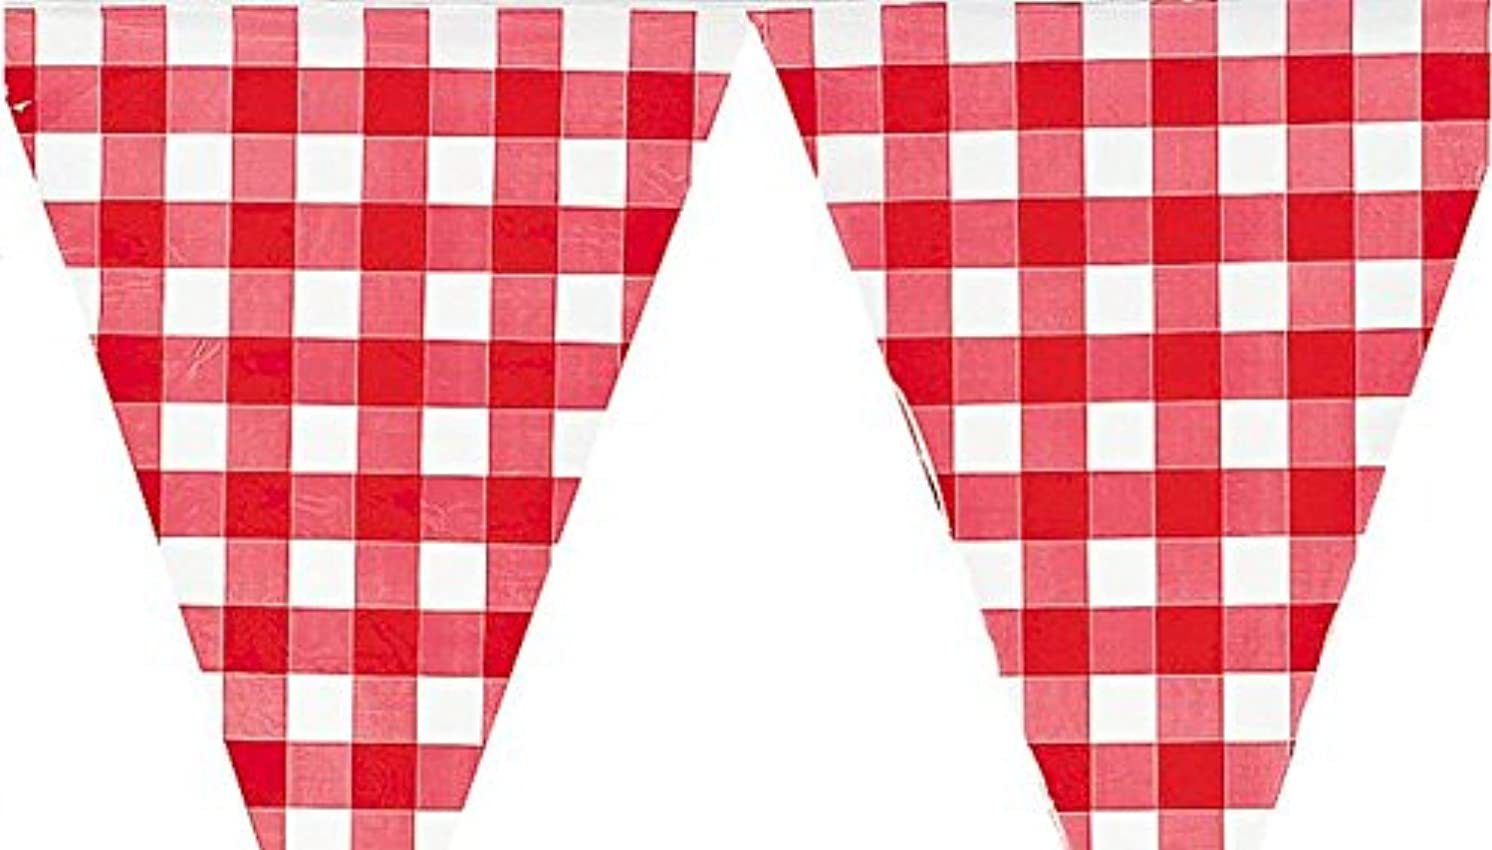 Large Red and White Checkered Gingham pennant banner - 24 feet long